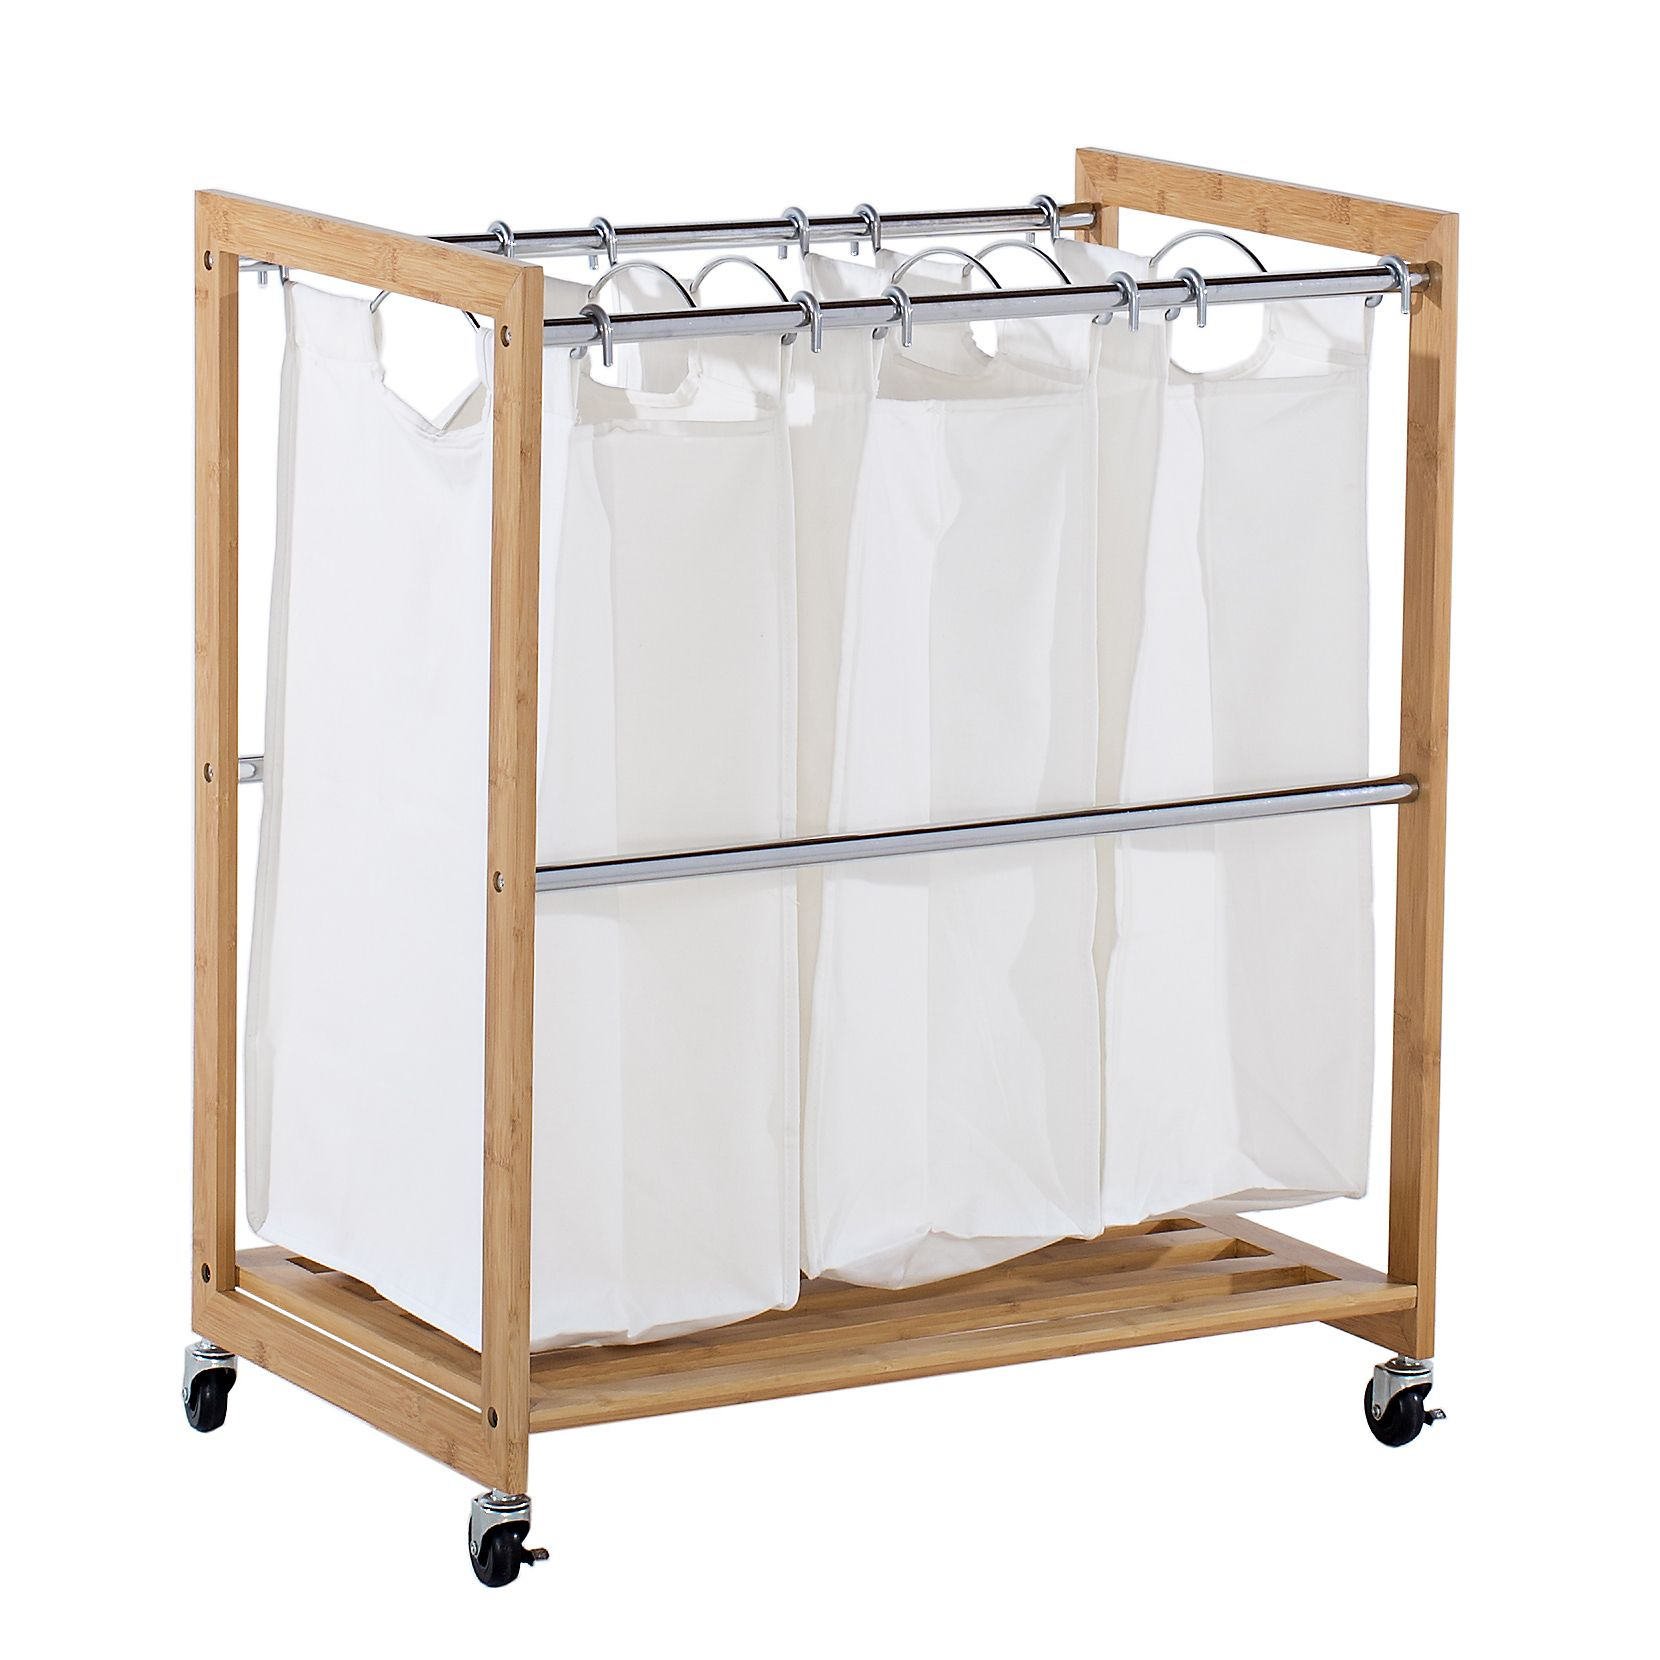 Organizing laundry is a snap with the EcoStorage 3 bag Bamboo Laundry Cart This